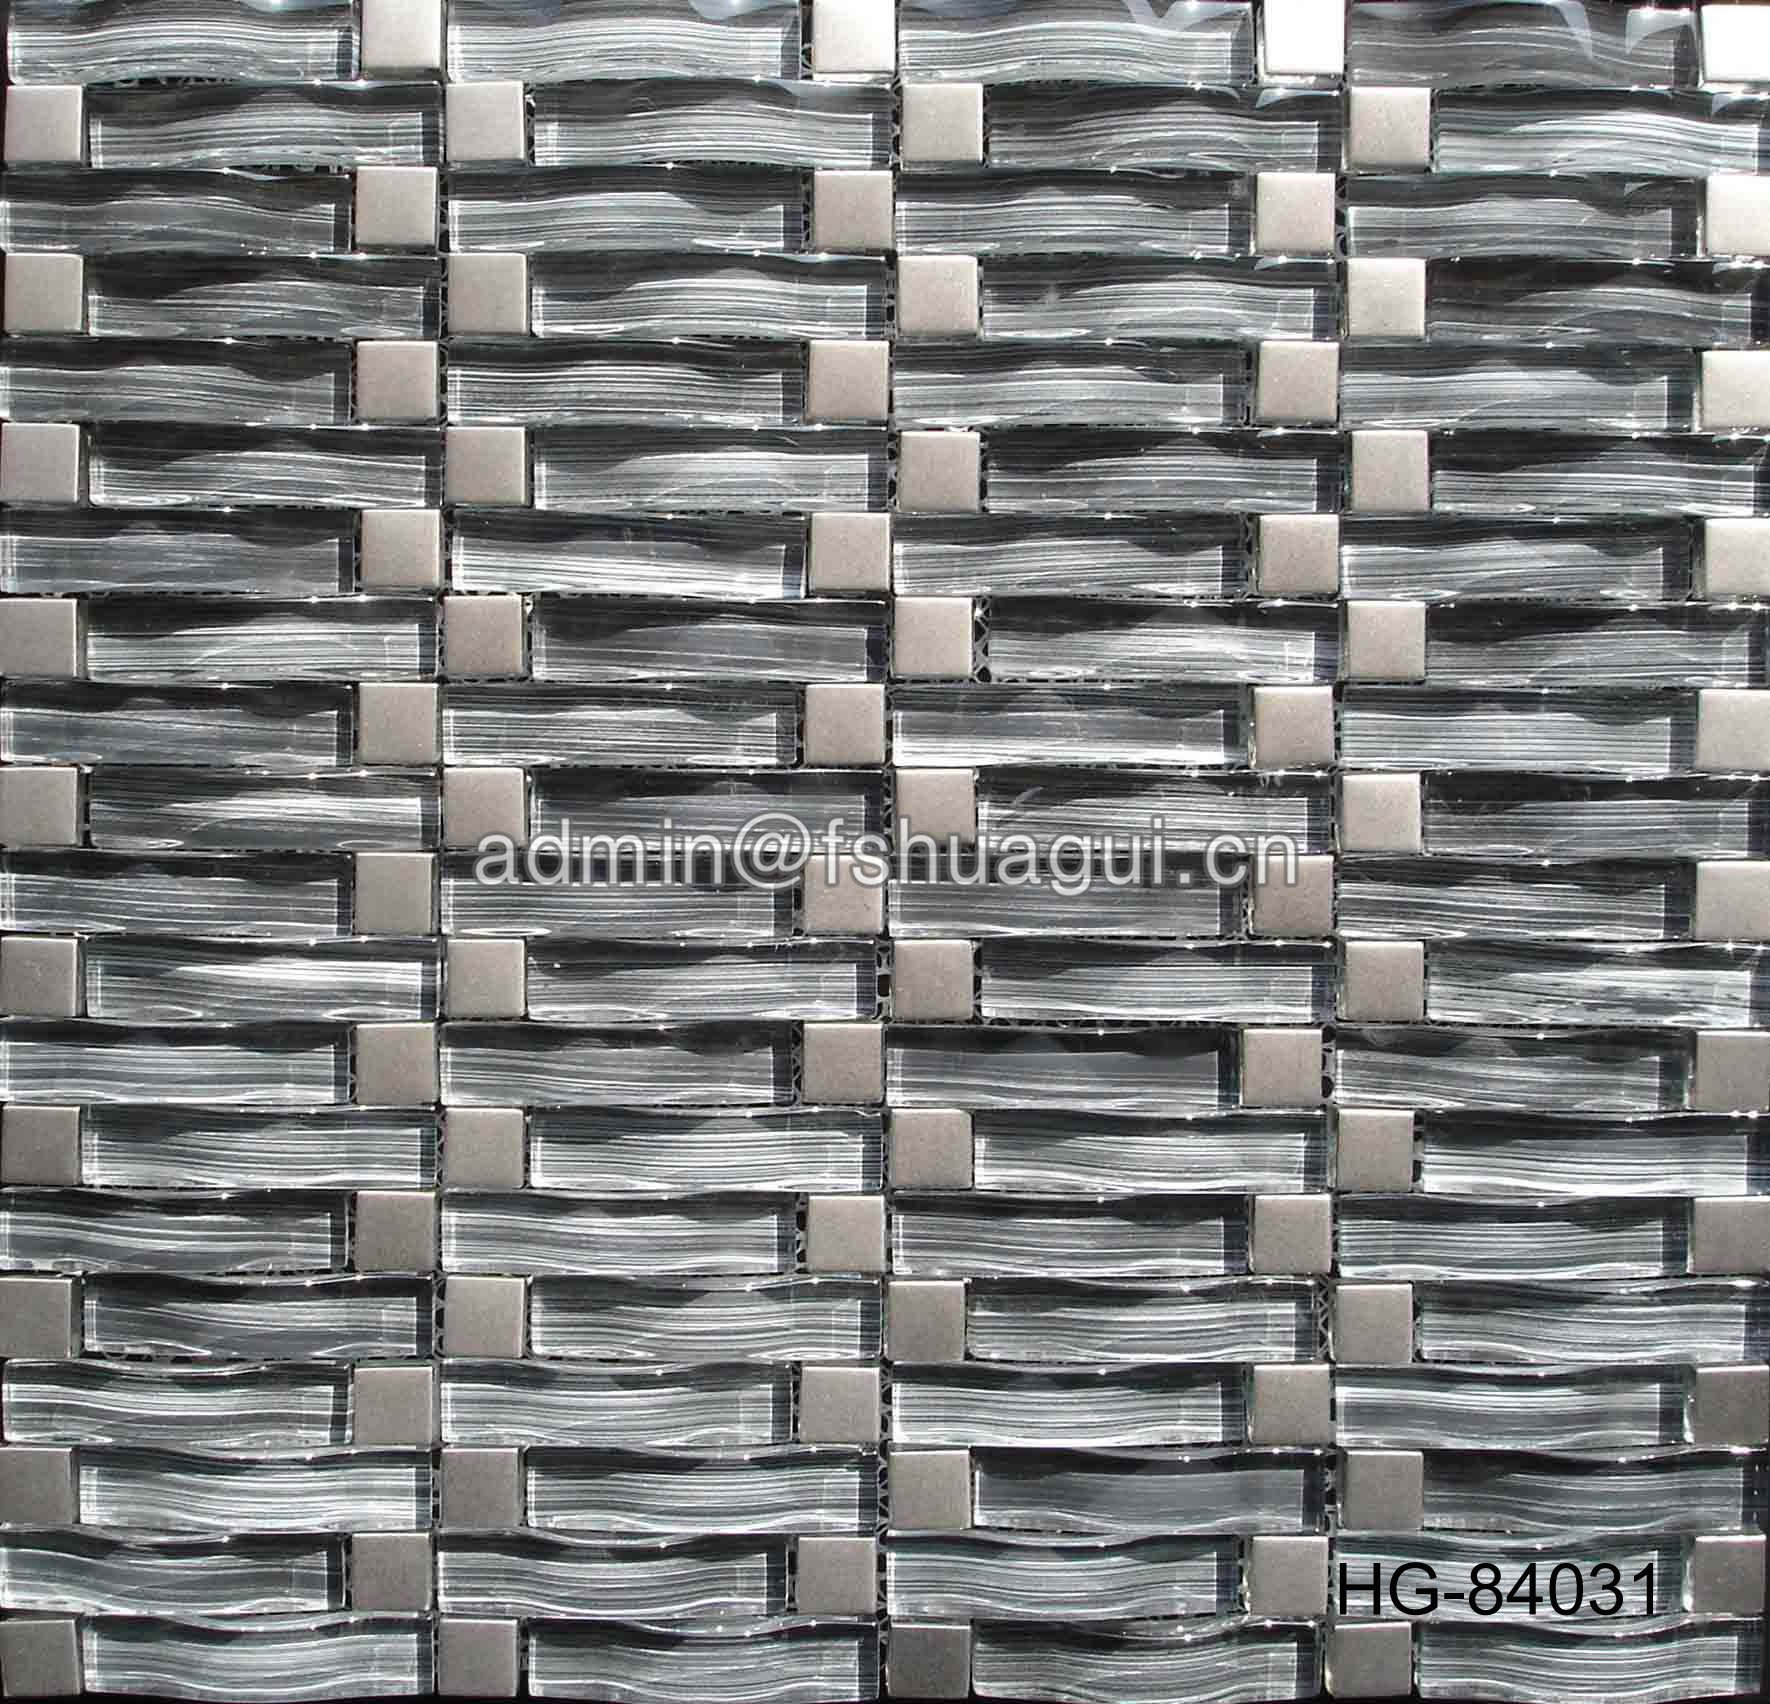 Huagui Popular Decorative Wall Pink Glass Mosaic Tile For Bedroom HG-84028 GLASS MOSAIC TILE image58